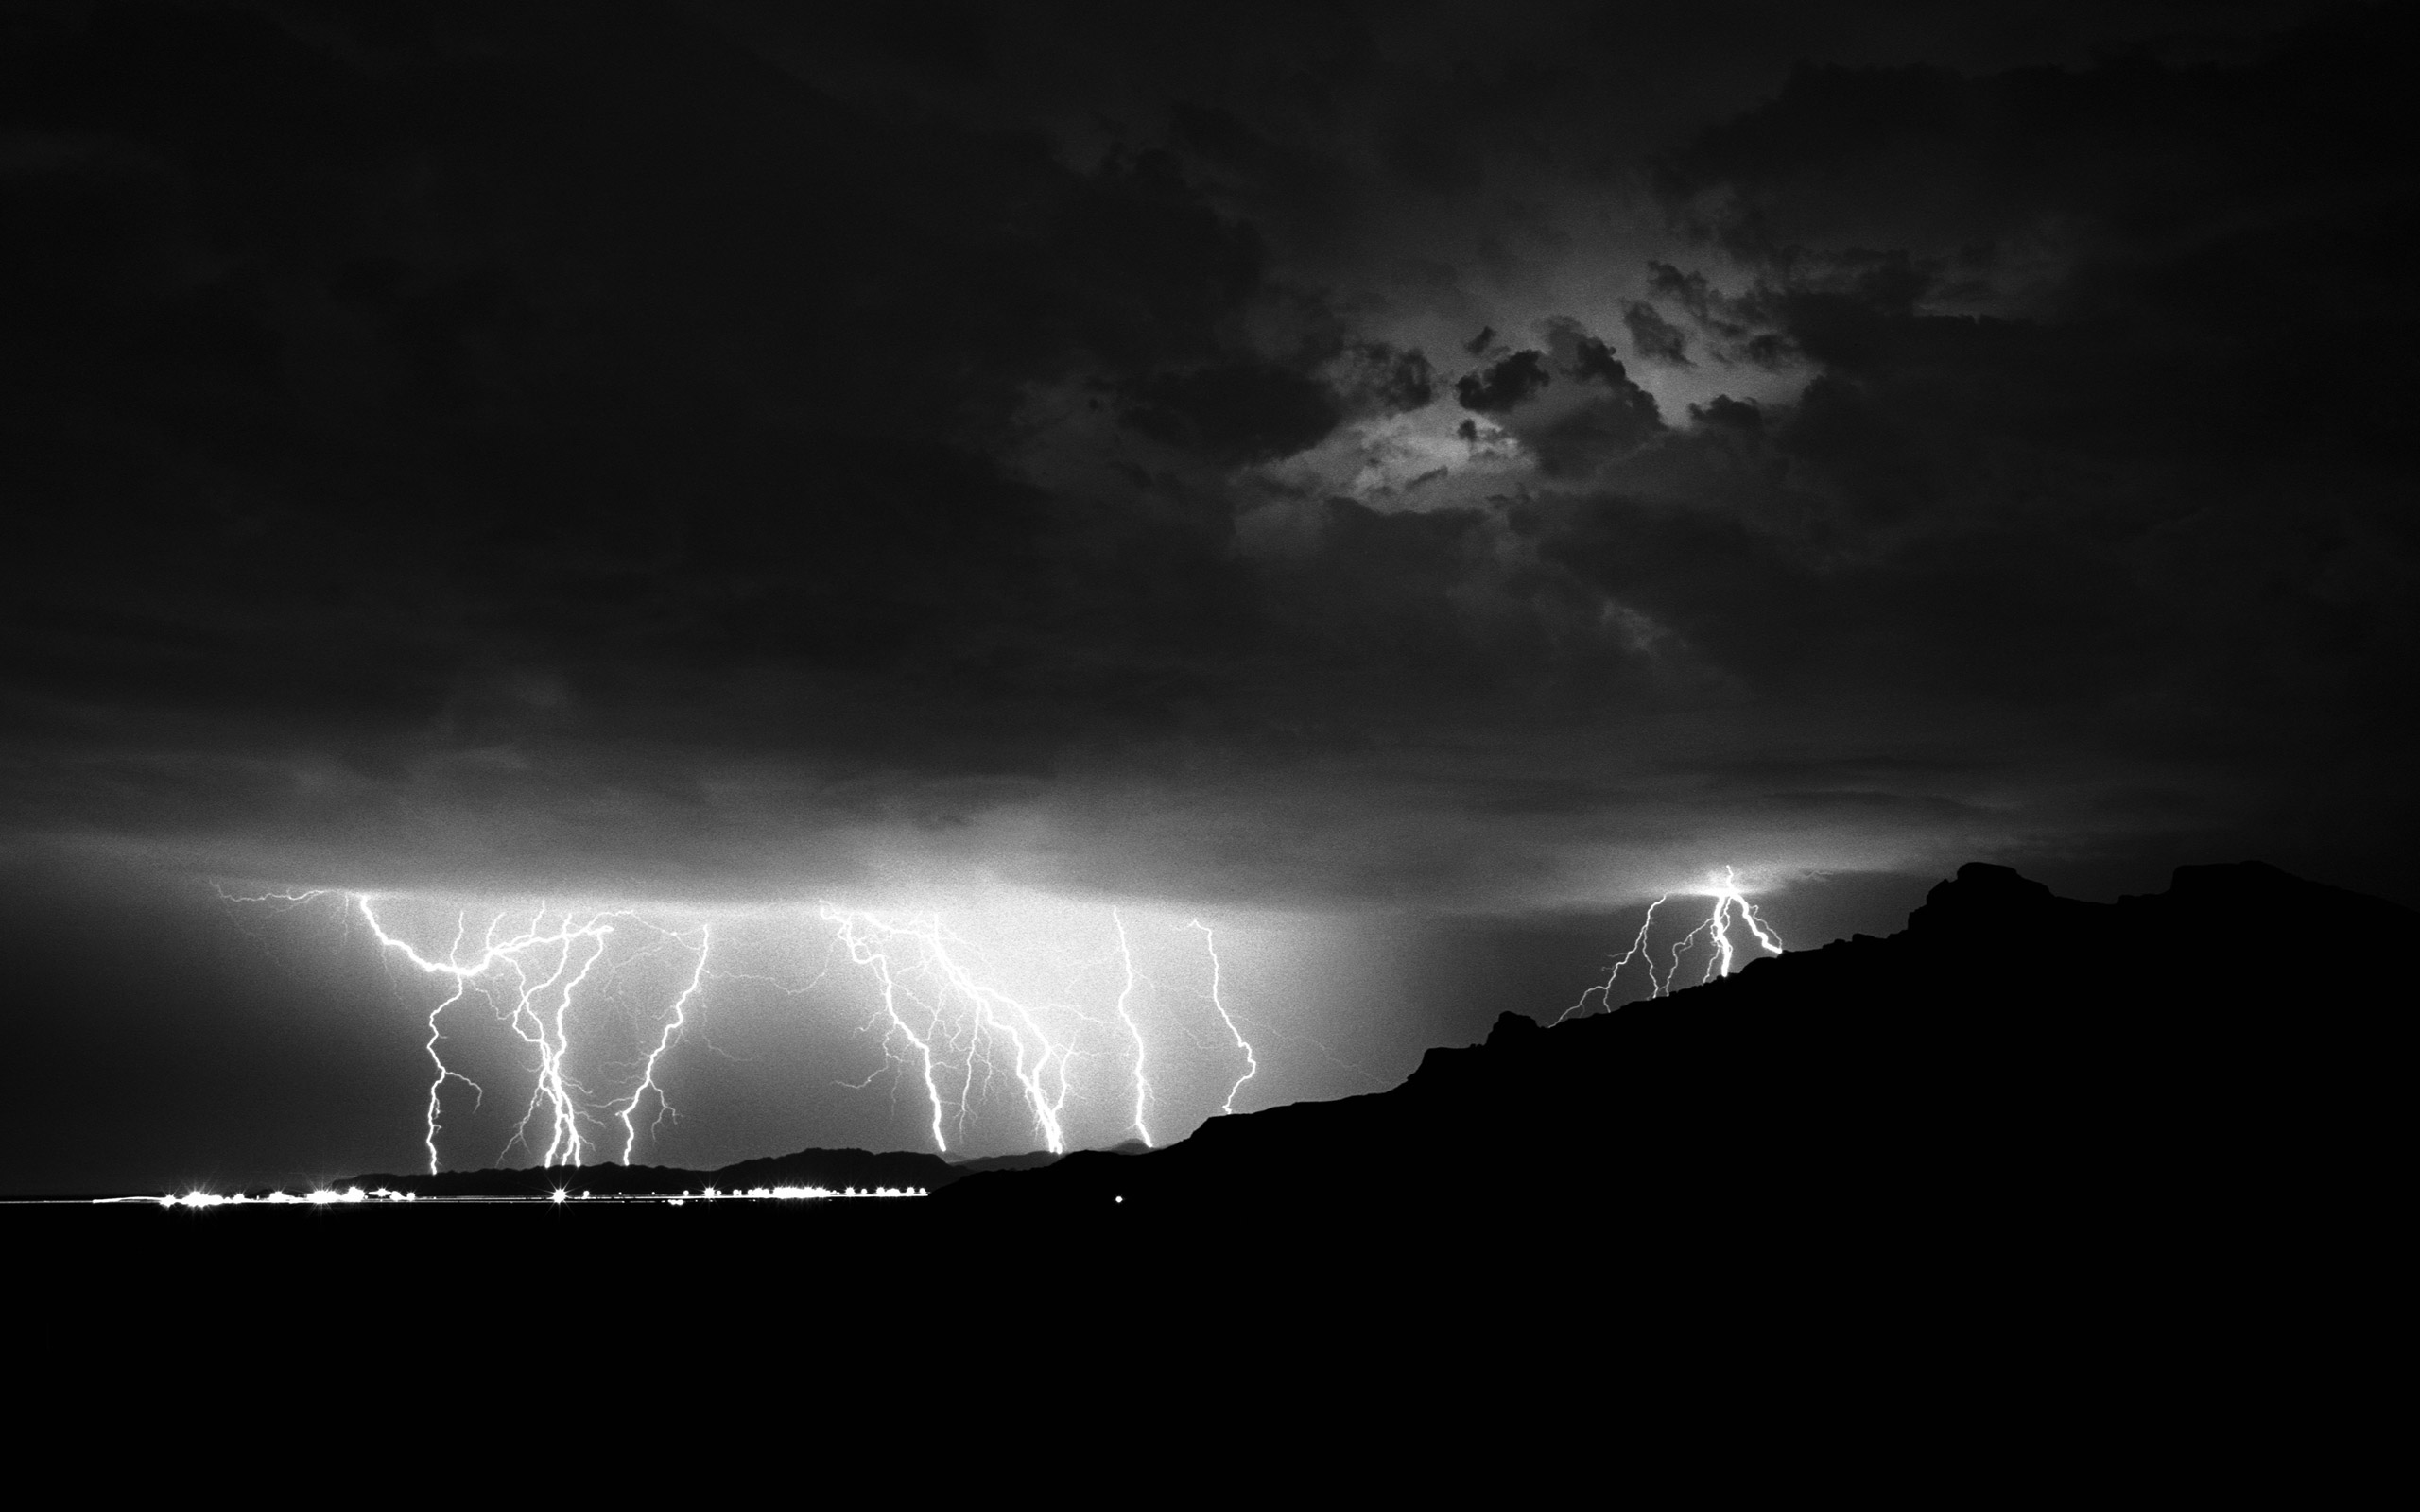 Thunderstorm HD Wallpaper . APK Download Android News